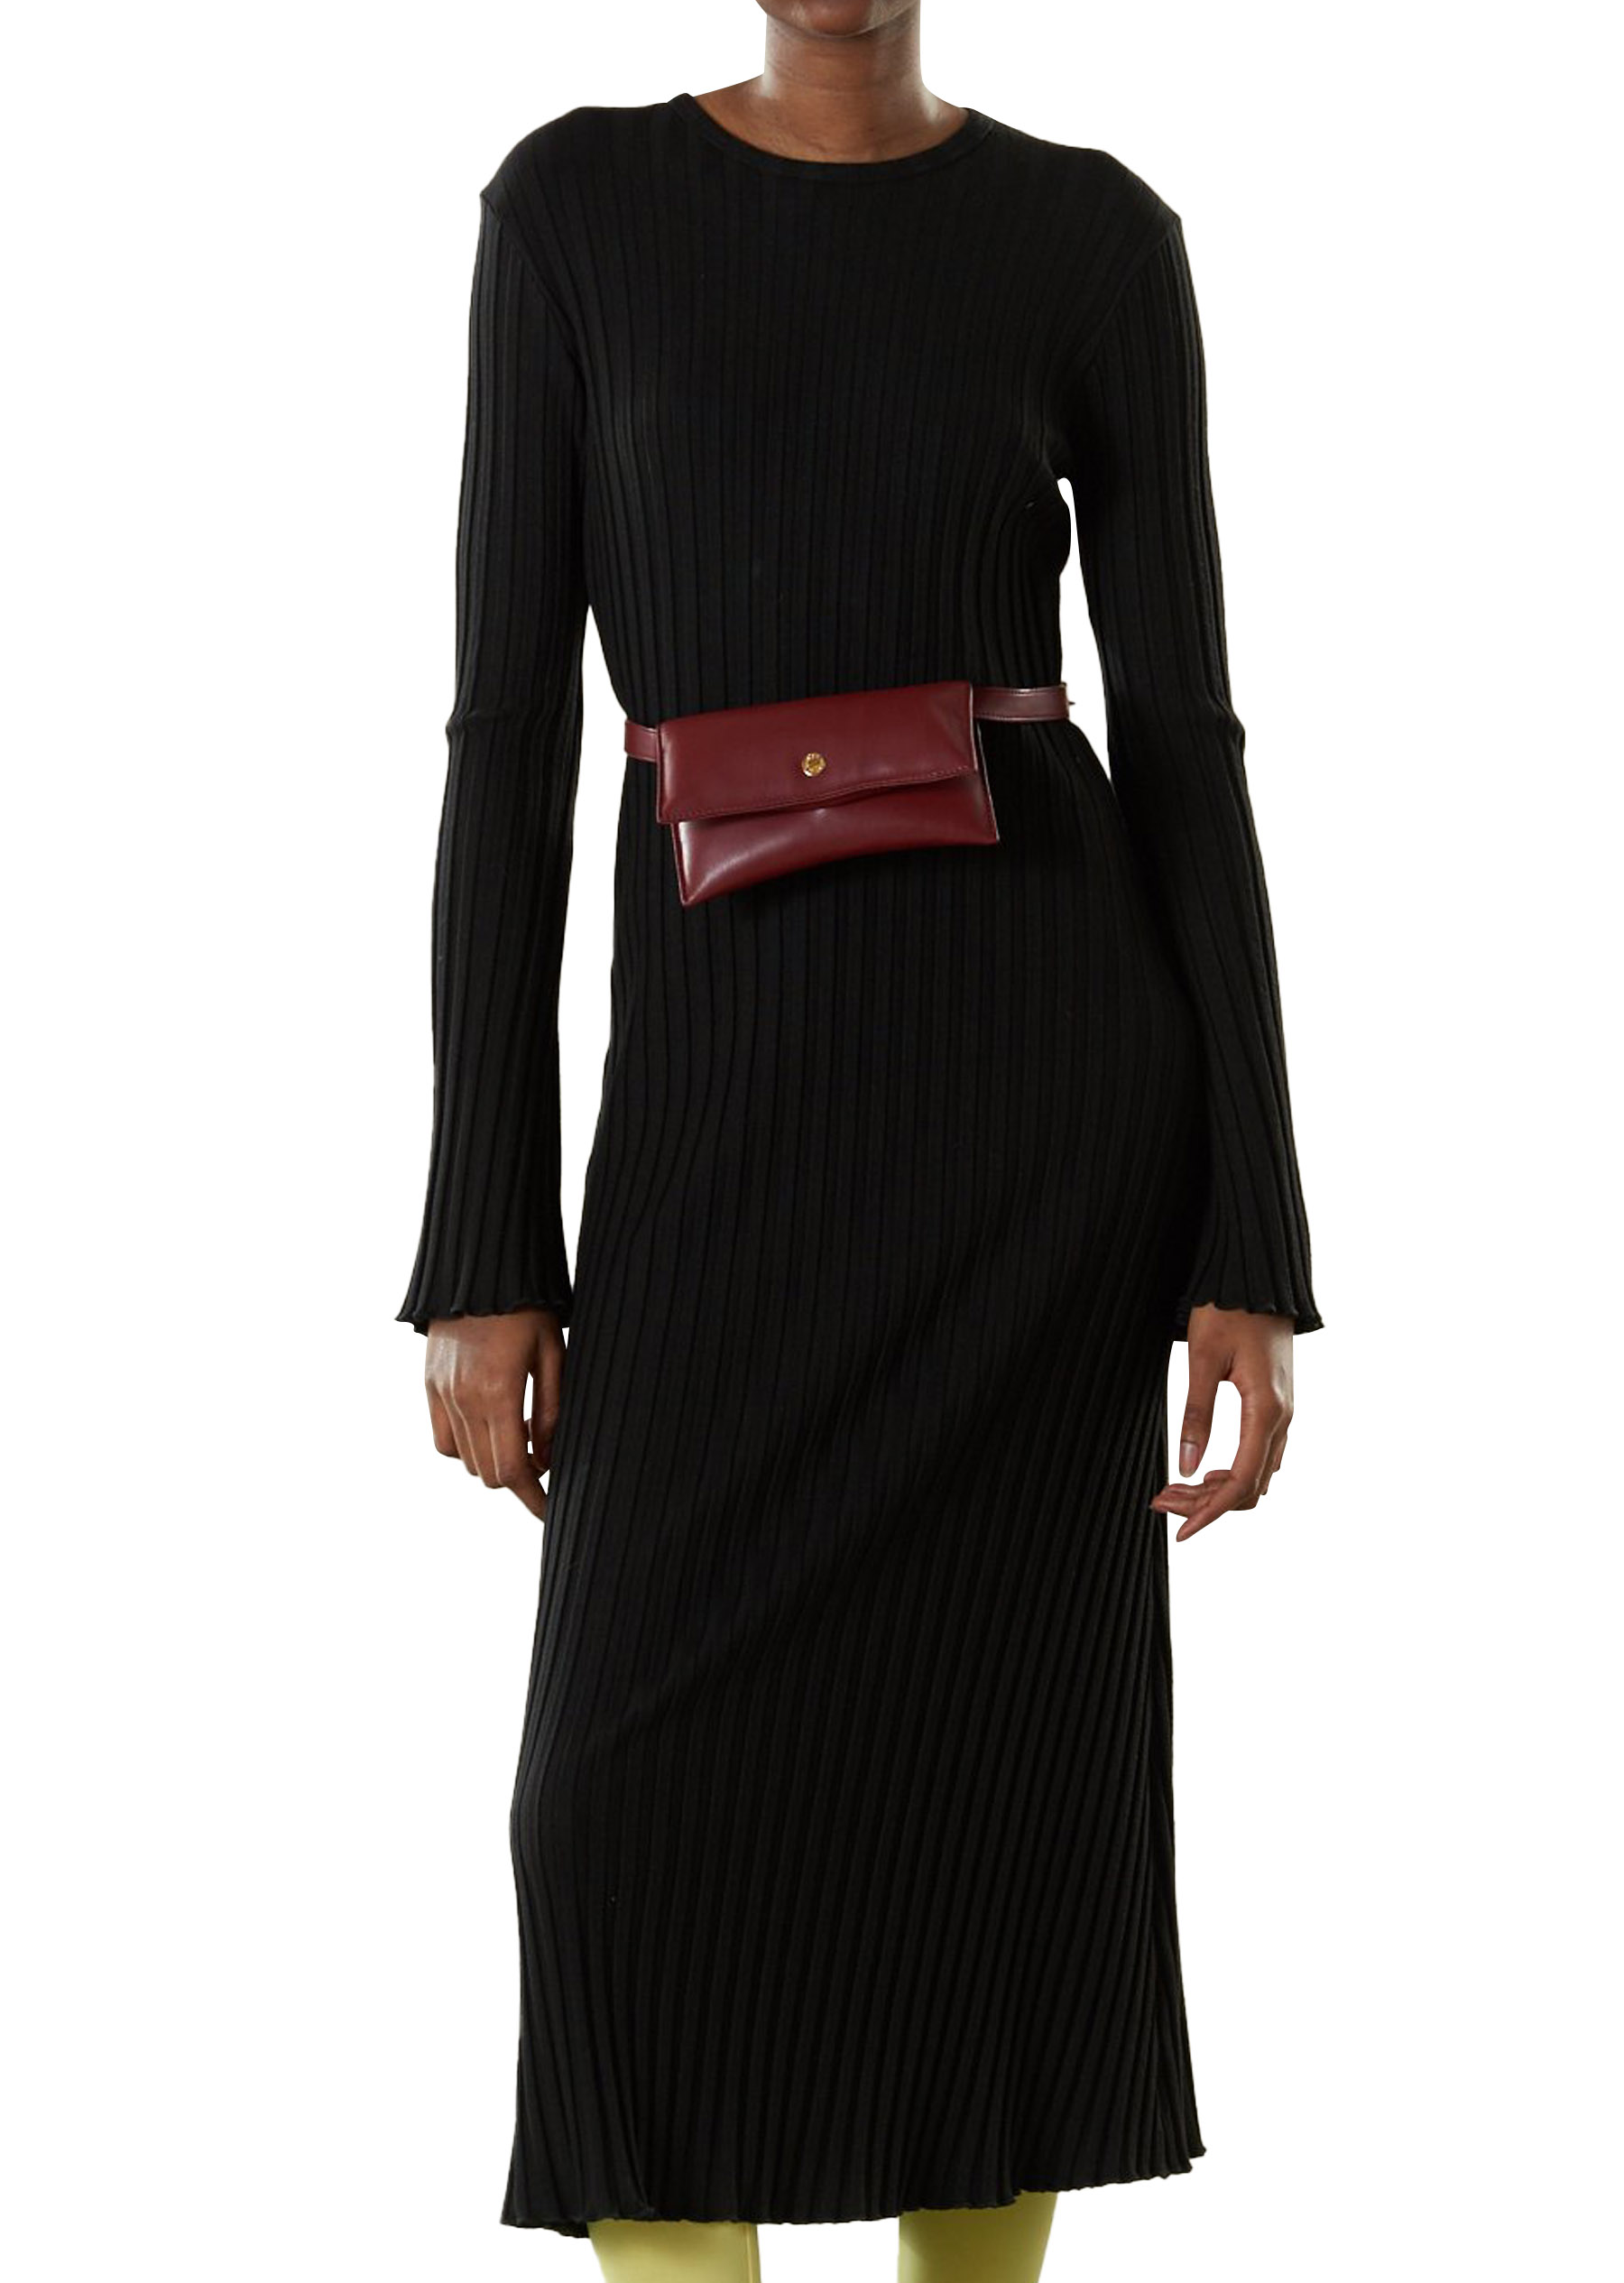 RIB Wells Dress in Black by Simon Miller - 1